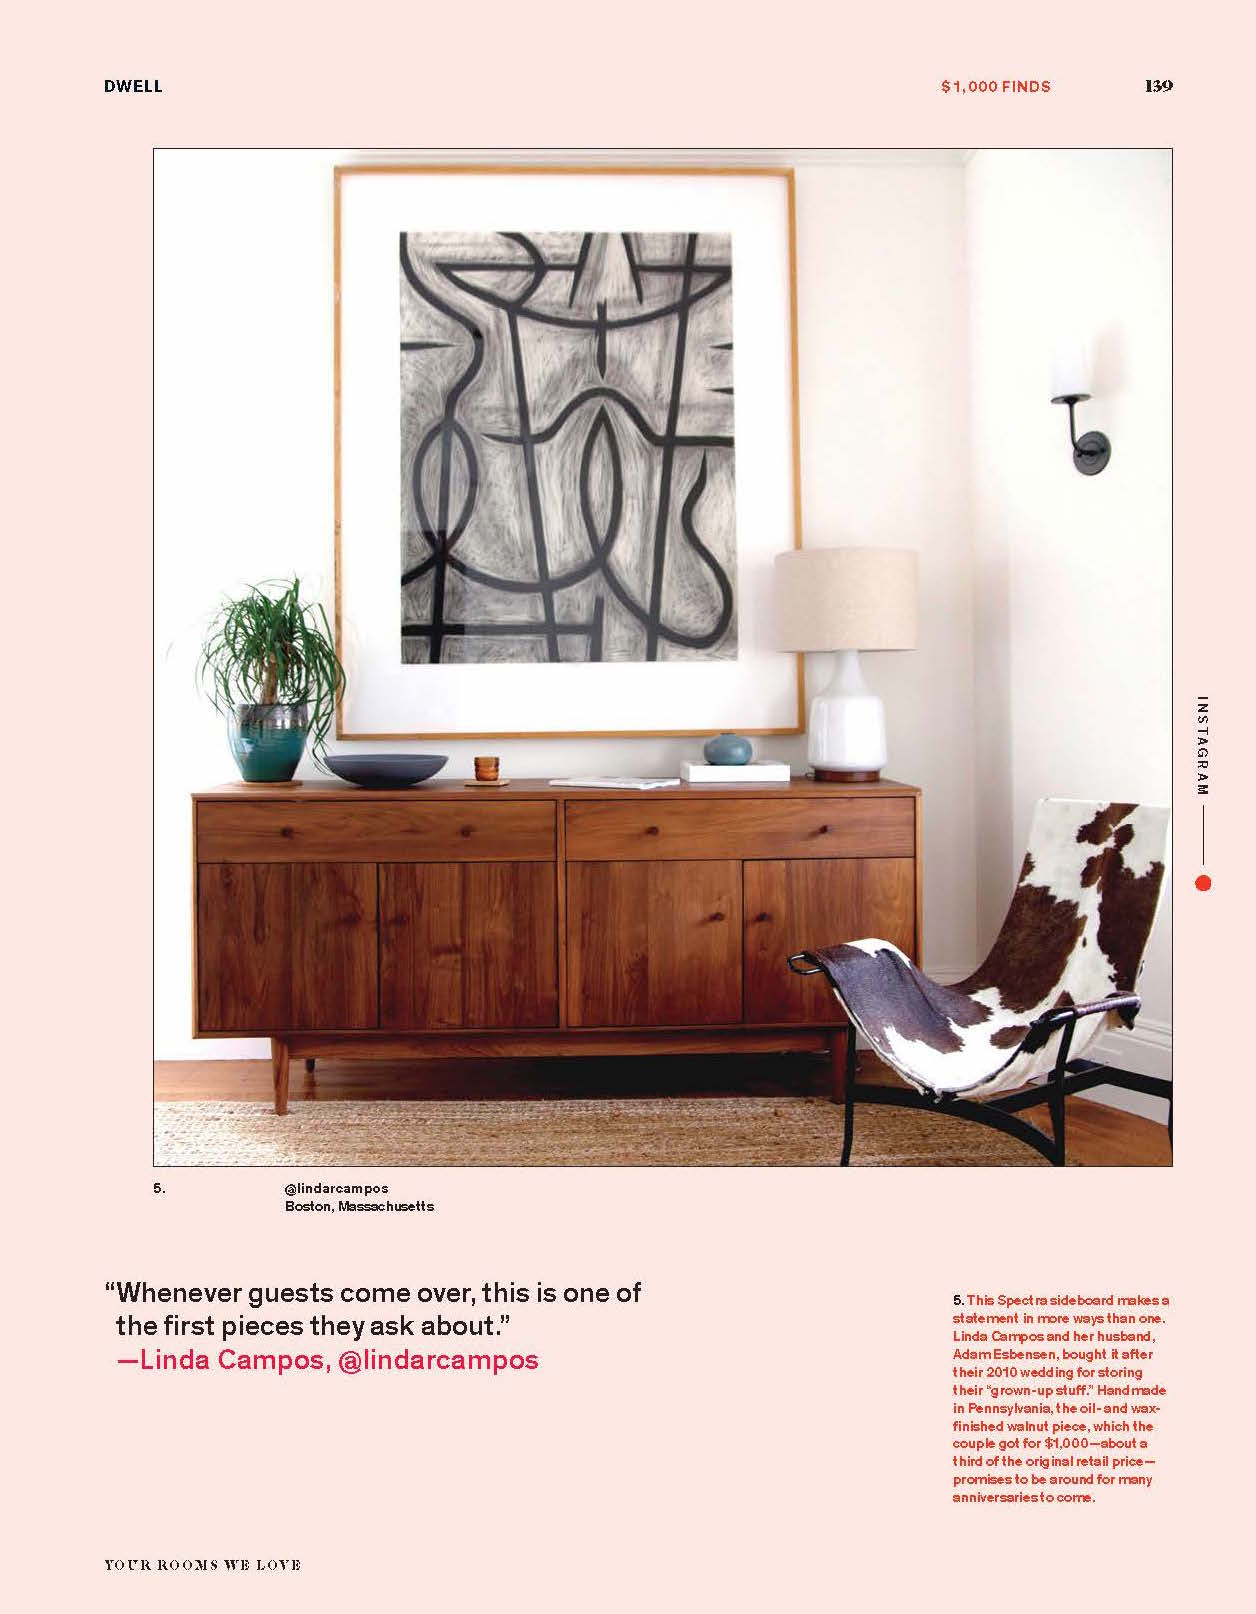 Dwell Feature p 139.jpg